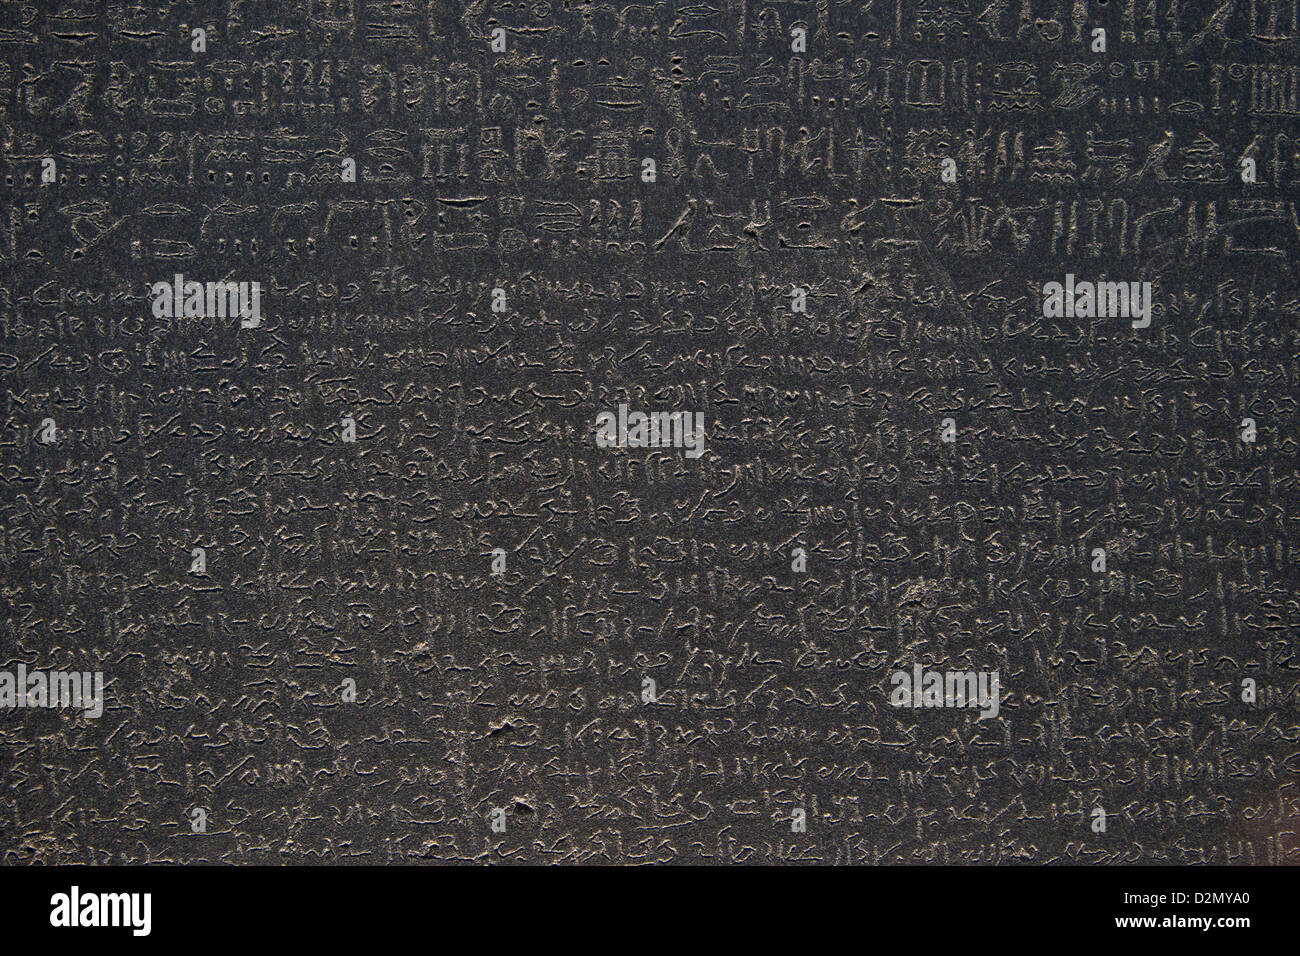 Egyptian hieroglyphs and demotic script, Rosetta Stone, 196 BC, British Museum, London, England, UK, GB, British - Stock Image